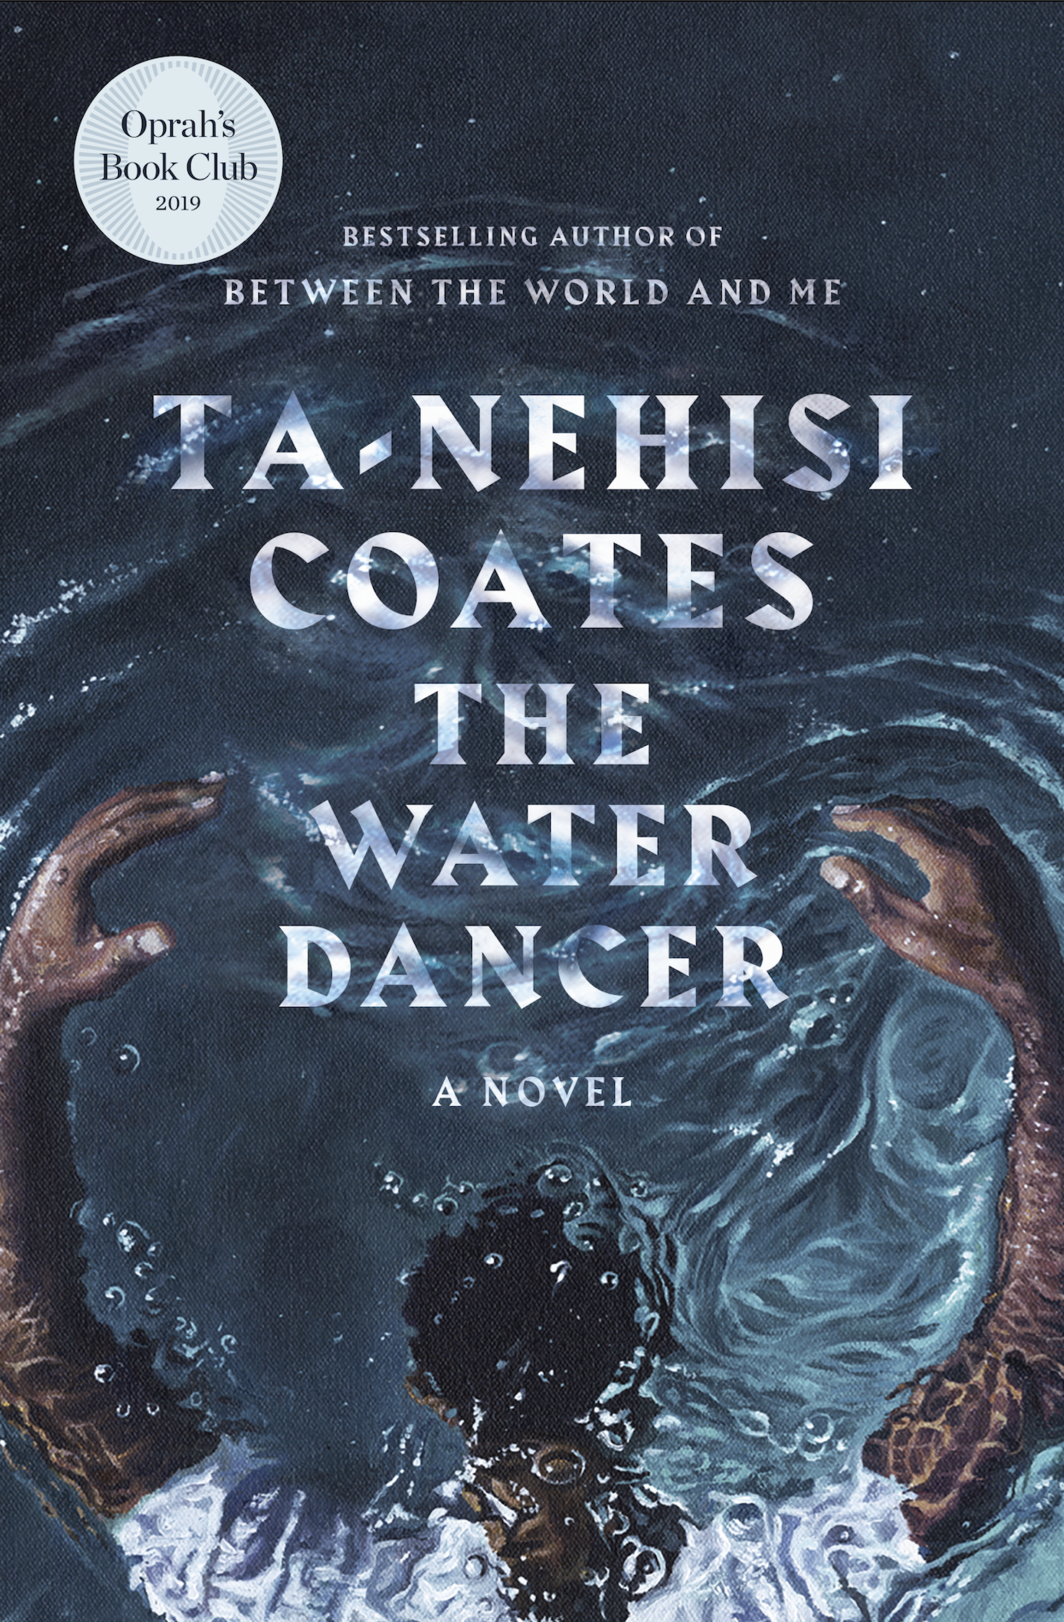 The cover of The Water Dancer